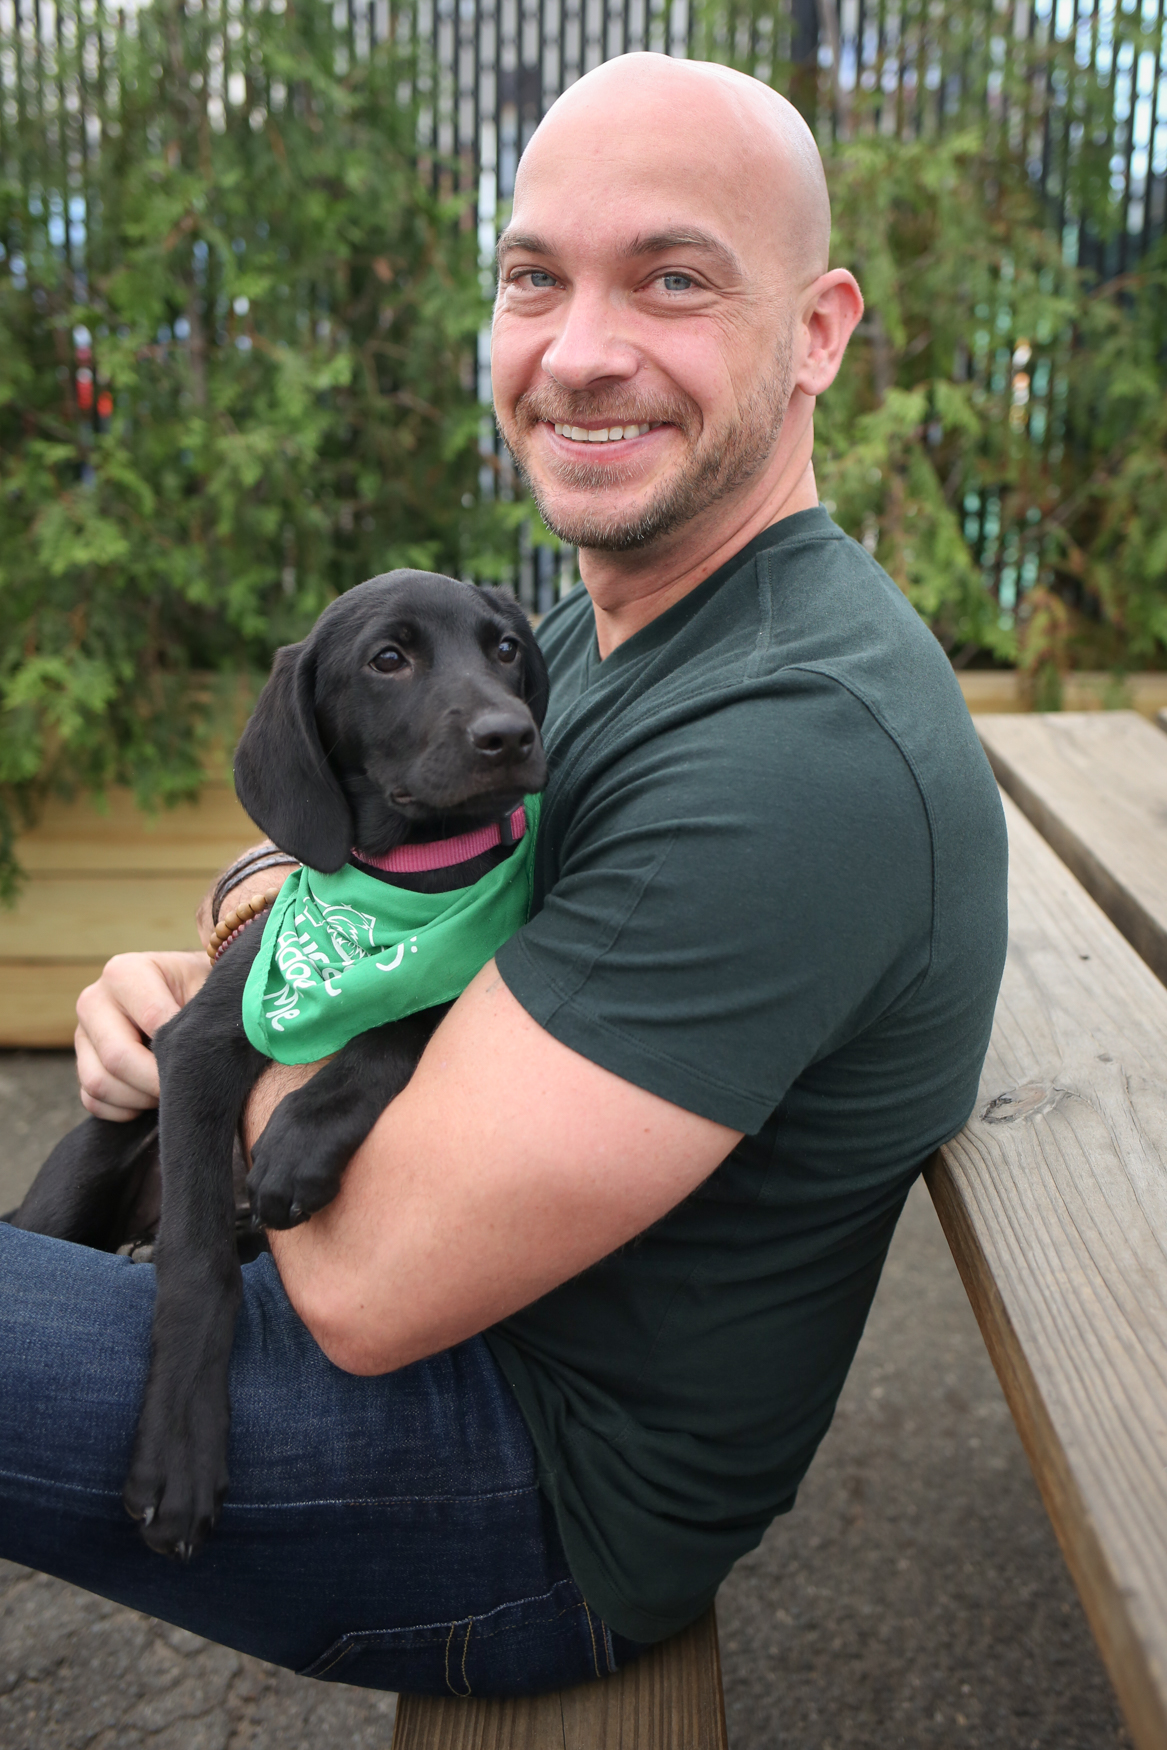 Meet Marshmallow and Aaron, a 3.5-month-old Black Lab/Shepherd mix and a 38-year-old human respectively. Photo location: Midlands Beer Garden (Image: Amanda Andrade-Rhoades/ DC Refined)